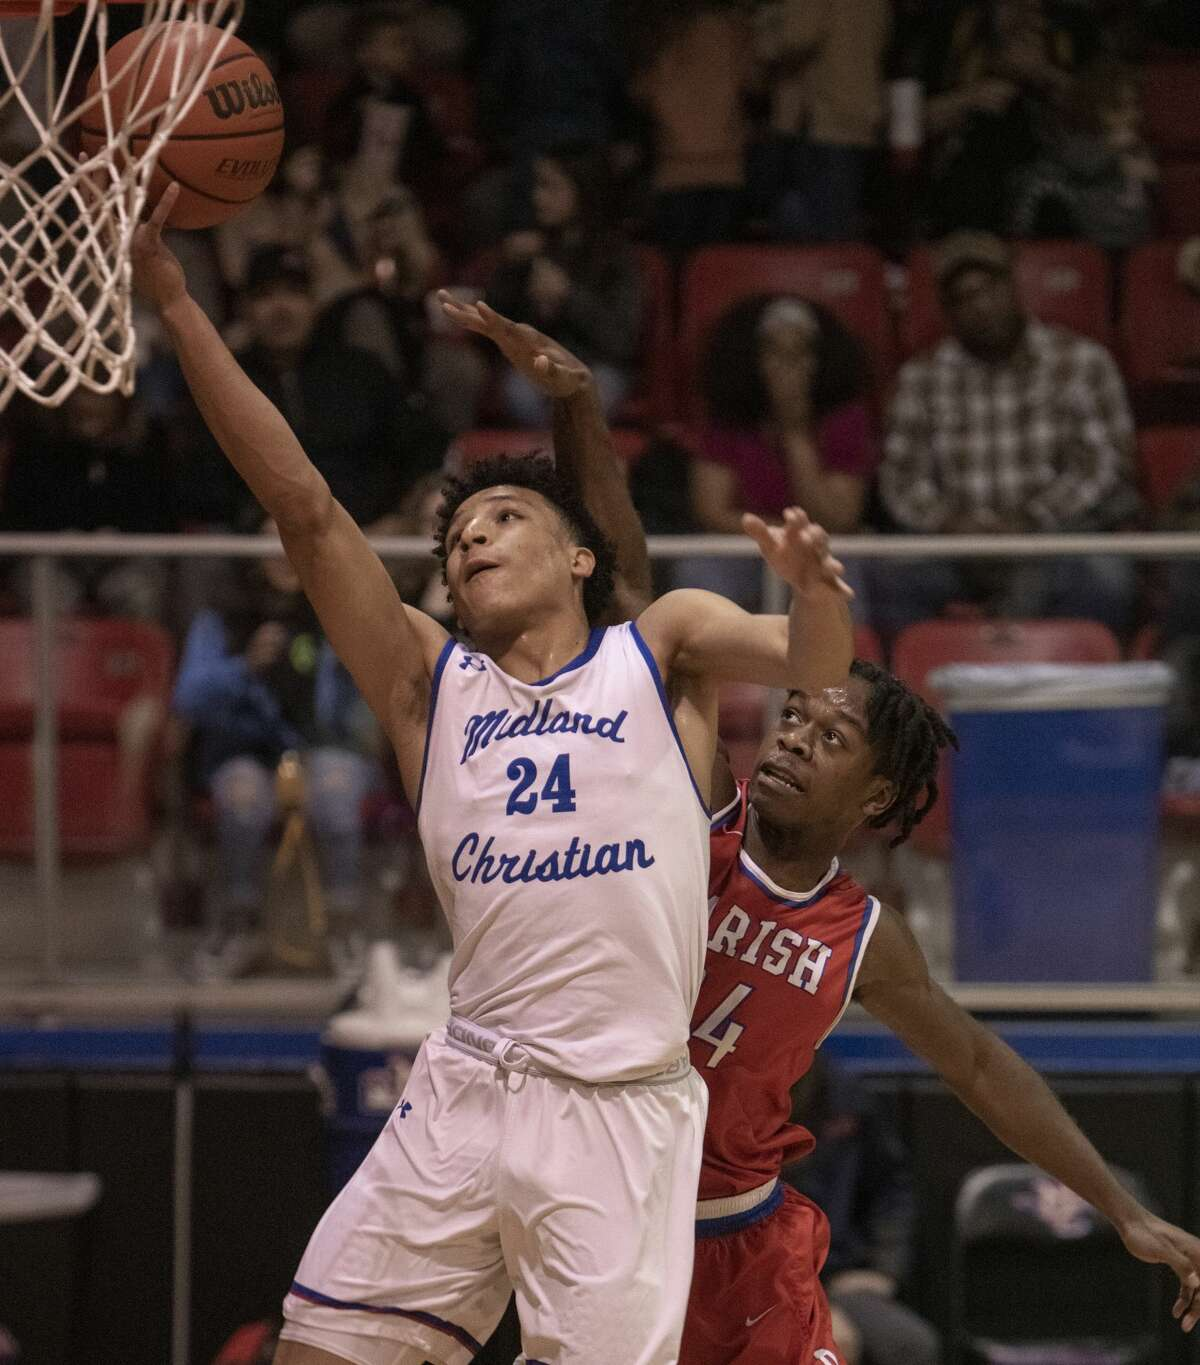 Midland Christian's Joseph Venzant goes in for a layup as Dallas Parish's Vinnie Gaddis tries to defend 02/18/2020 in the TAPPS 6A playoff at the McGraw Event Center. Tim Fischer/Reporter-Telegram